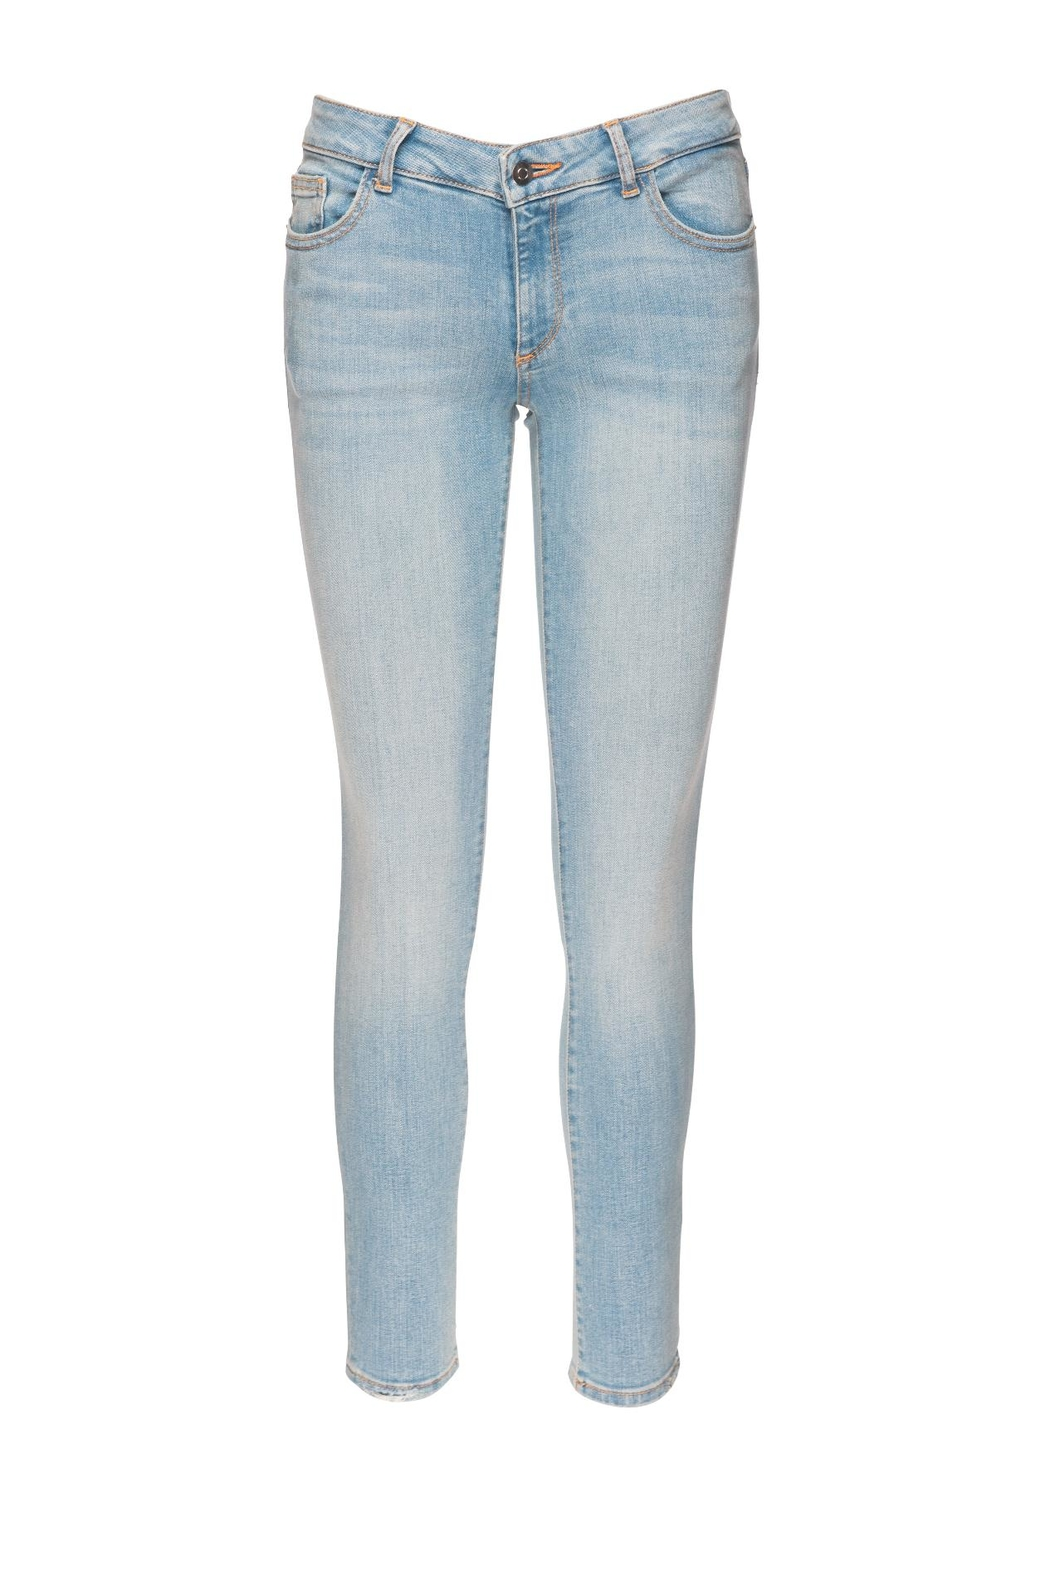 DL 1961 Emma Power Jeans - Main Image